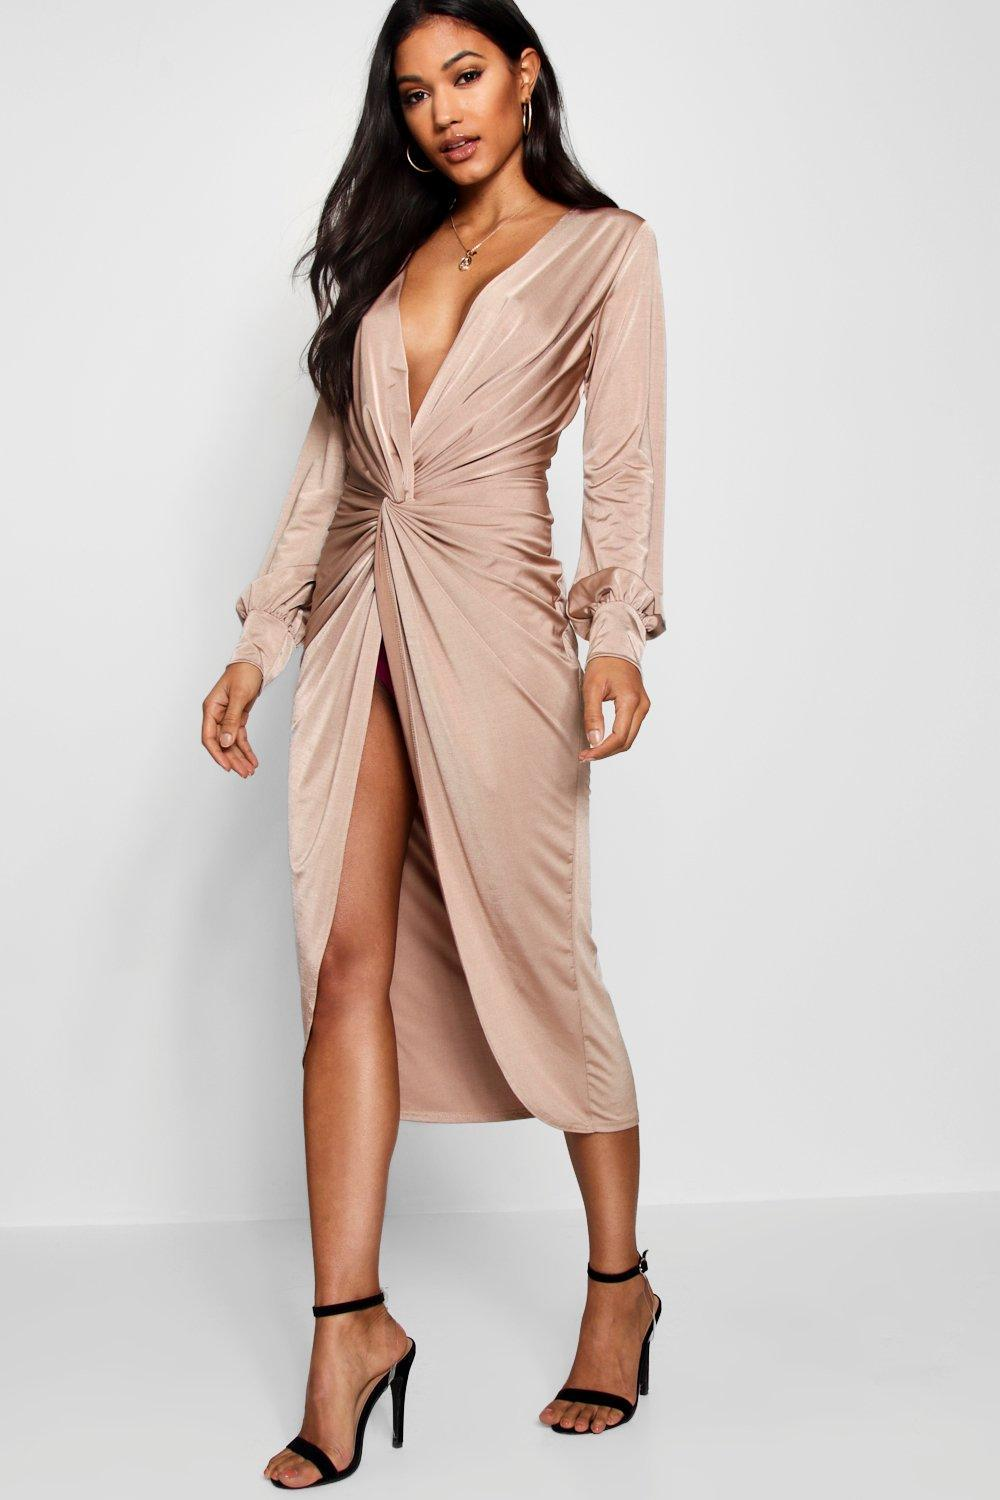 620f2393d9deb Boohoo. Women's Twist Front Plunge Slinky Midi Dress